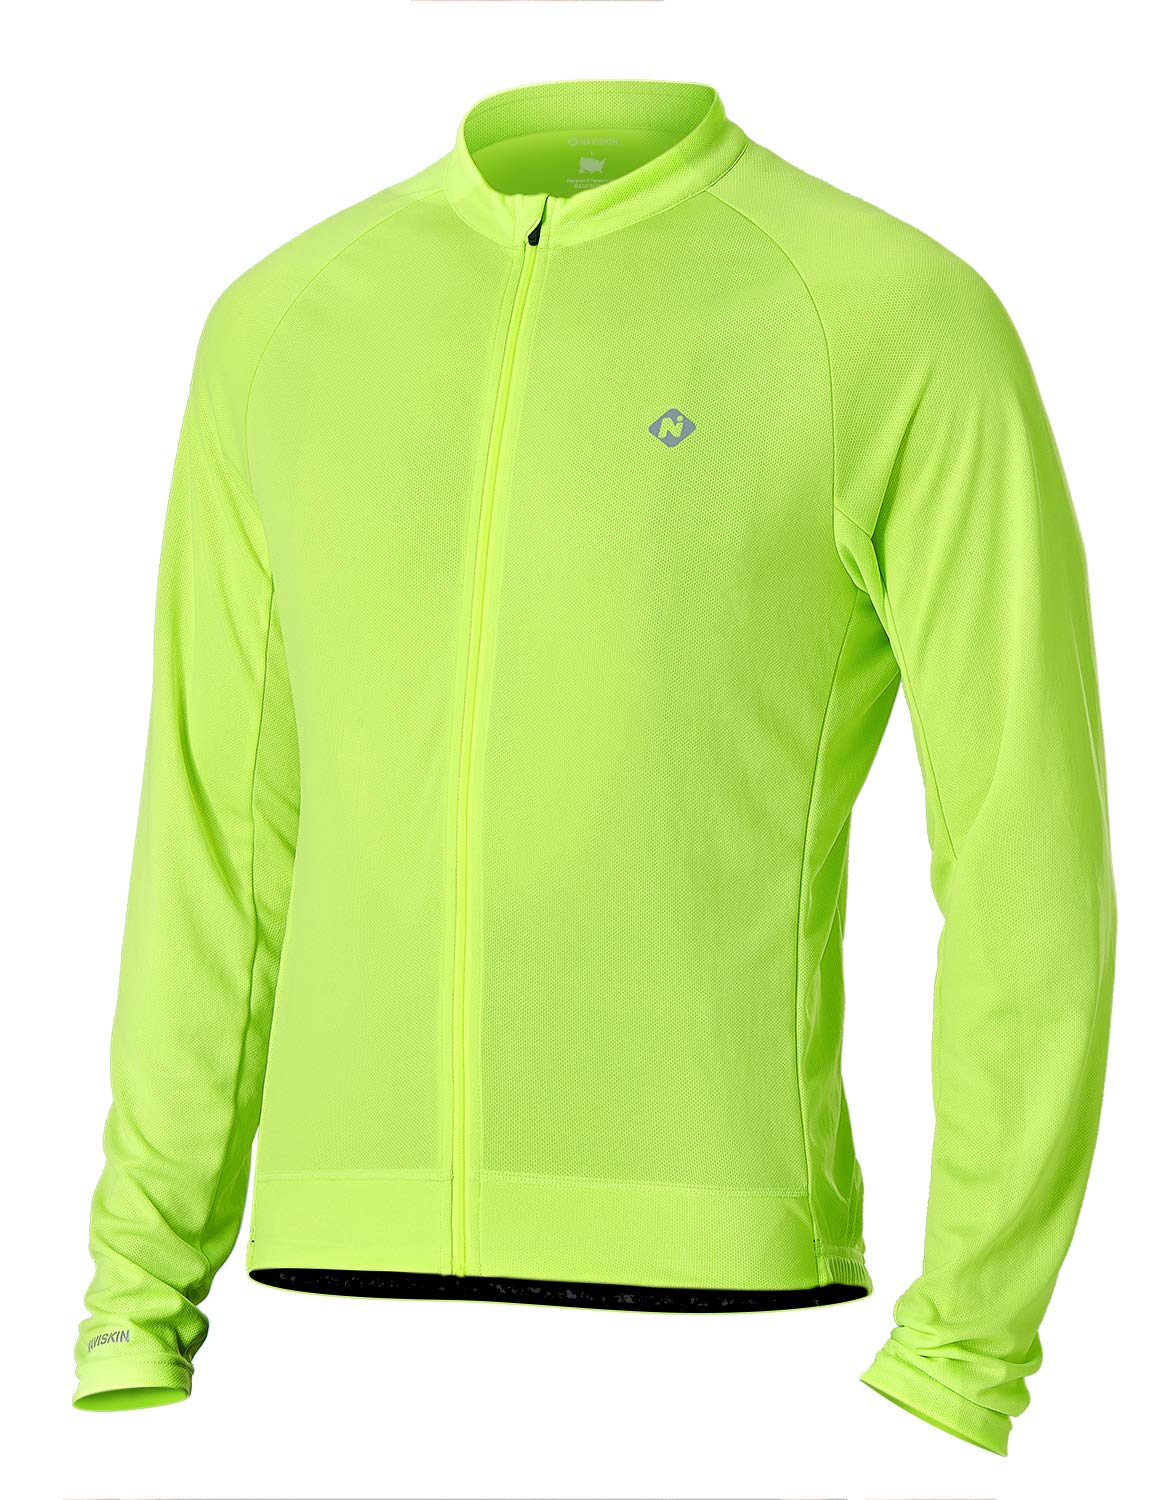 NAVISKIN Men's Quick Dry Bike Jersey Full Zip Long Sleeve Bicycle Cycling Jacket